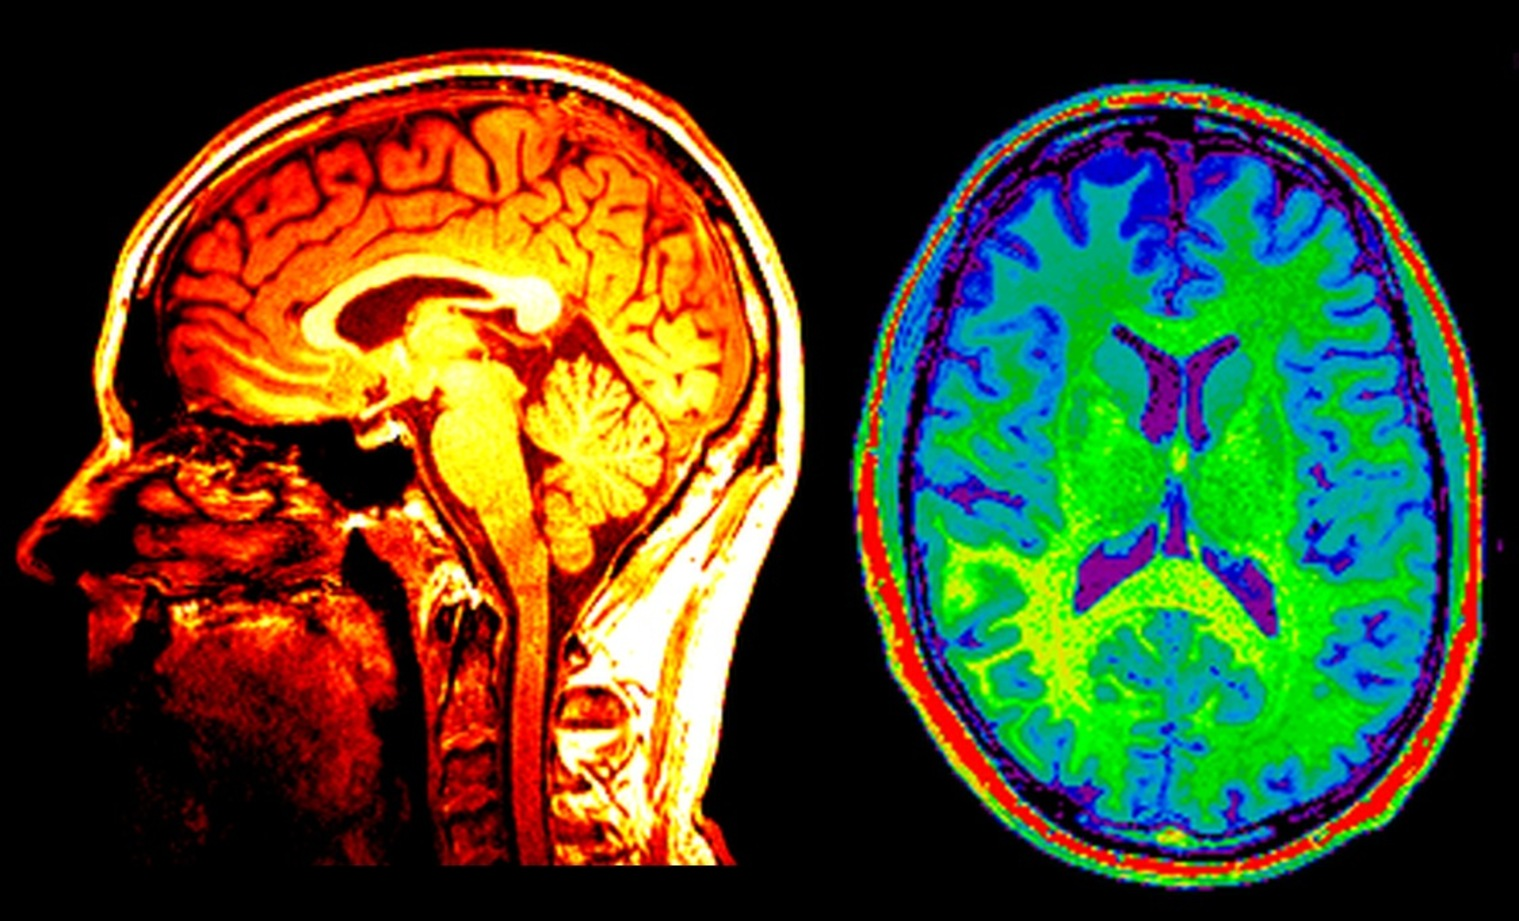 the use of brain scans in medicine and neuroscience Pain neuroscience education (pne), also known as therapeutic neuroscience education (tne), consists of educational sessions for patients describing in detail the neurobiology and neurophysiology of pain and pain processing by the nervous system (louw, diener, butler and puentedura 2011.